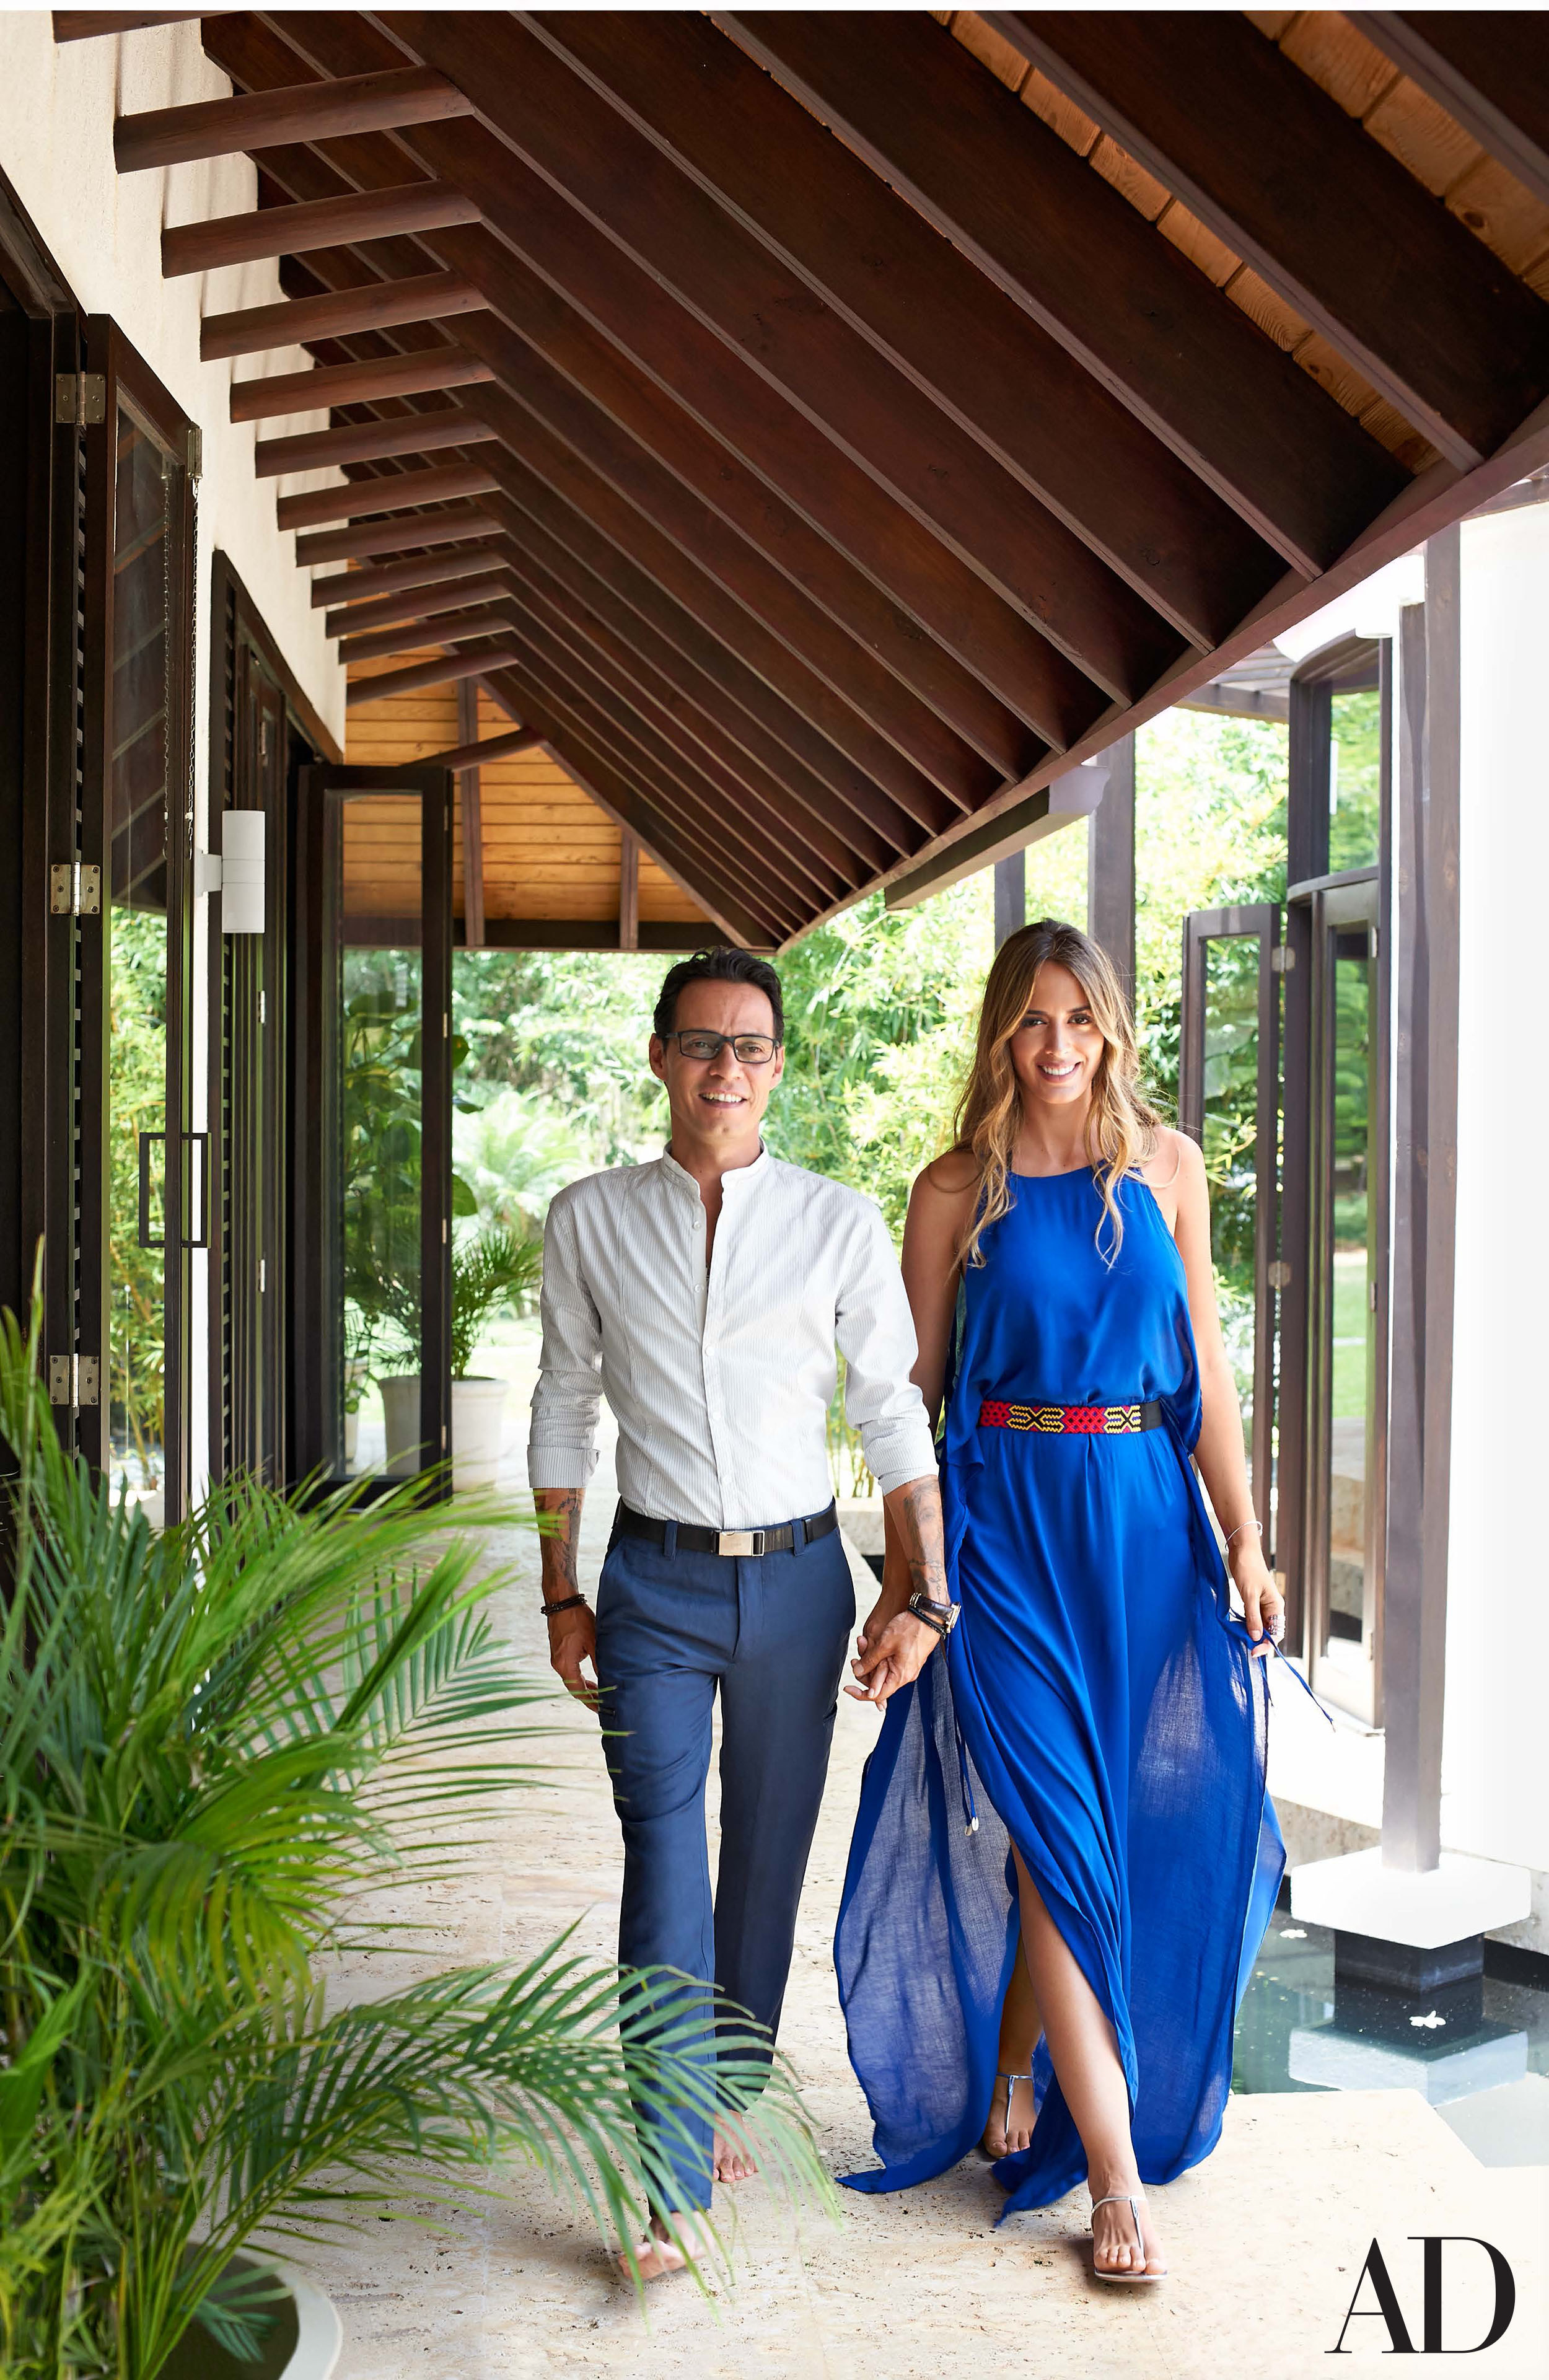 Marc anthony and shannon de lima mu iz create an oasis in - Architectural digest celebrity homes 2016 ...